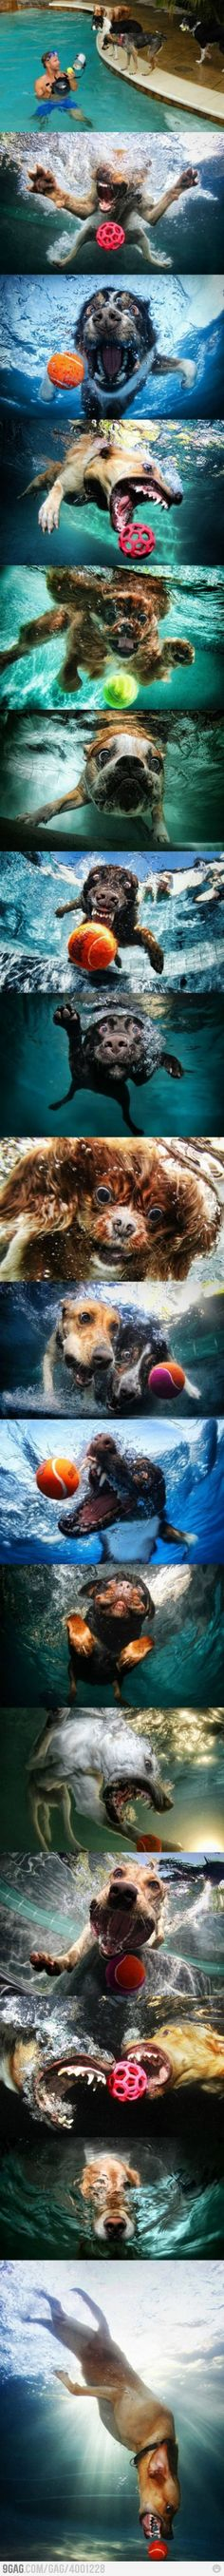 Swimming dog xD